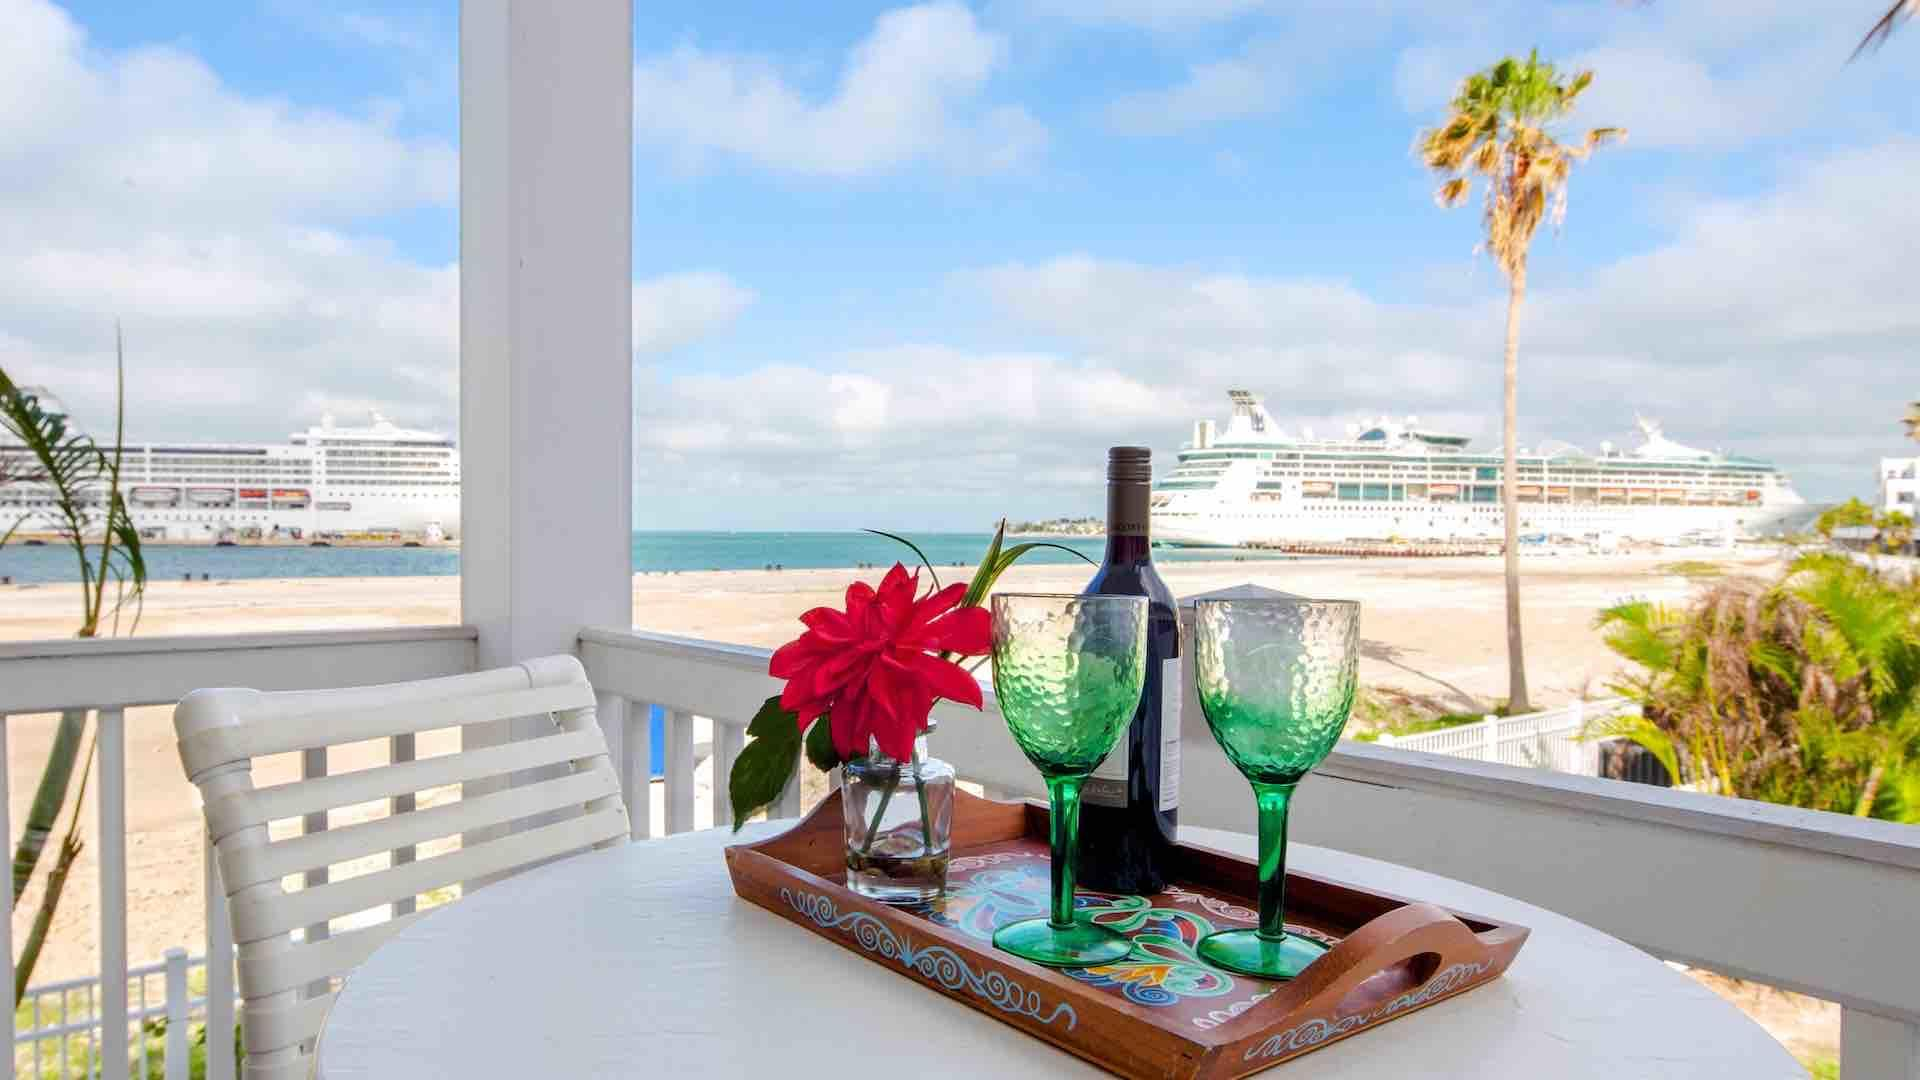 Enjoy an outdoor meal or happy hour from the private balcony...